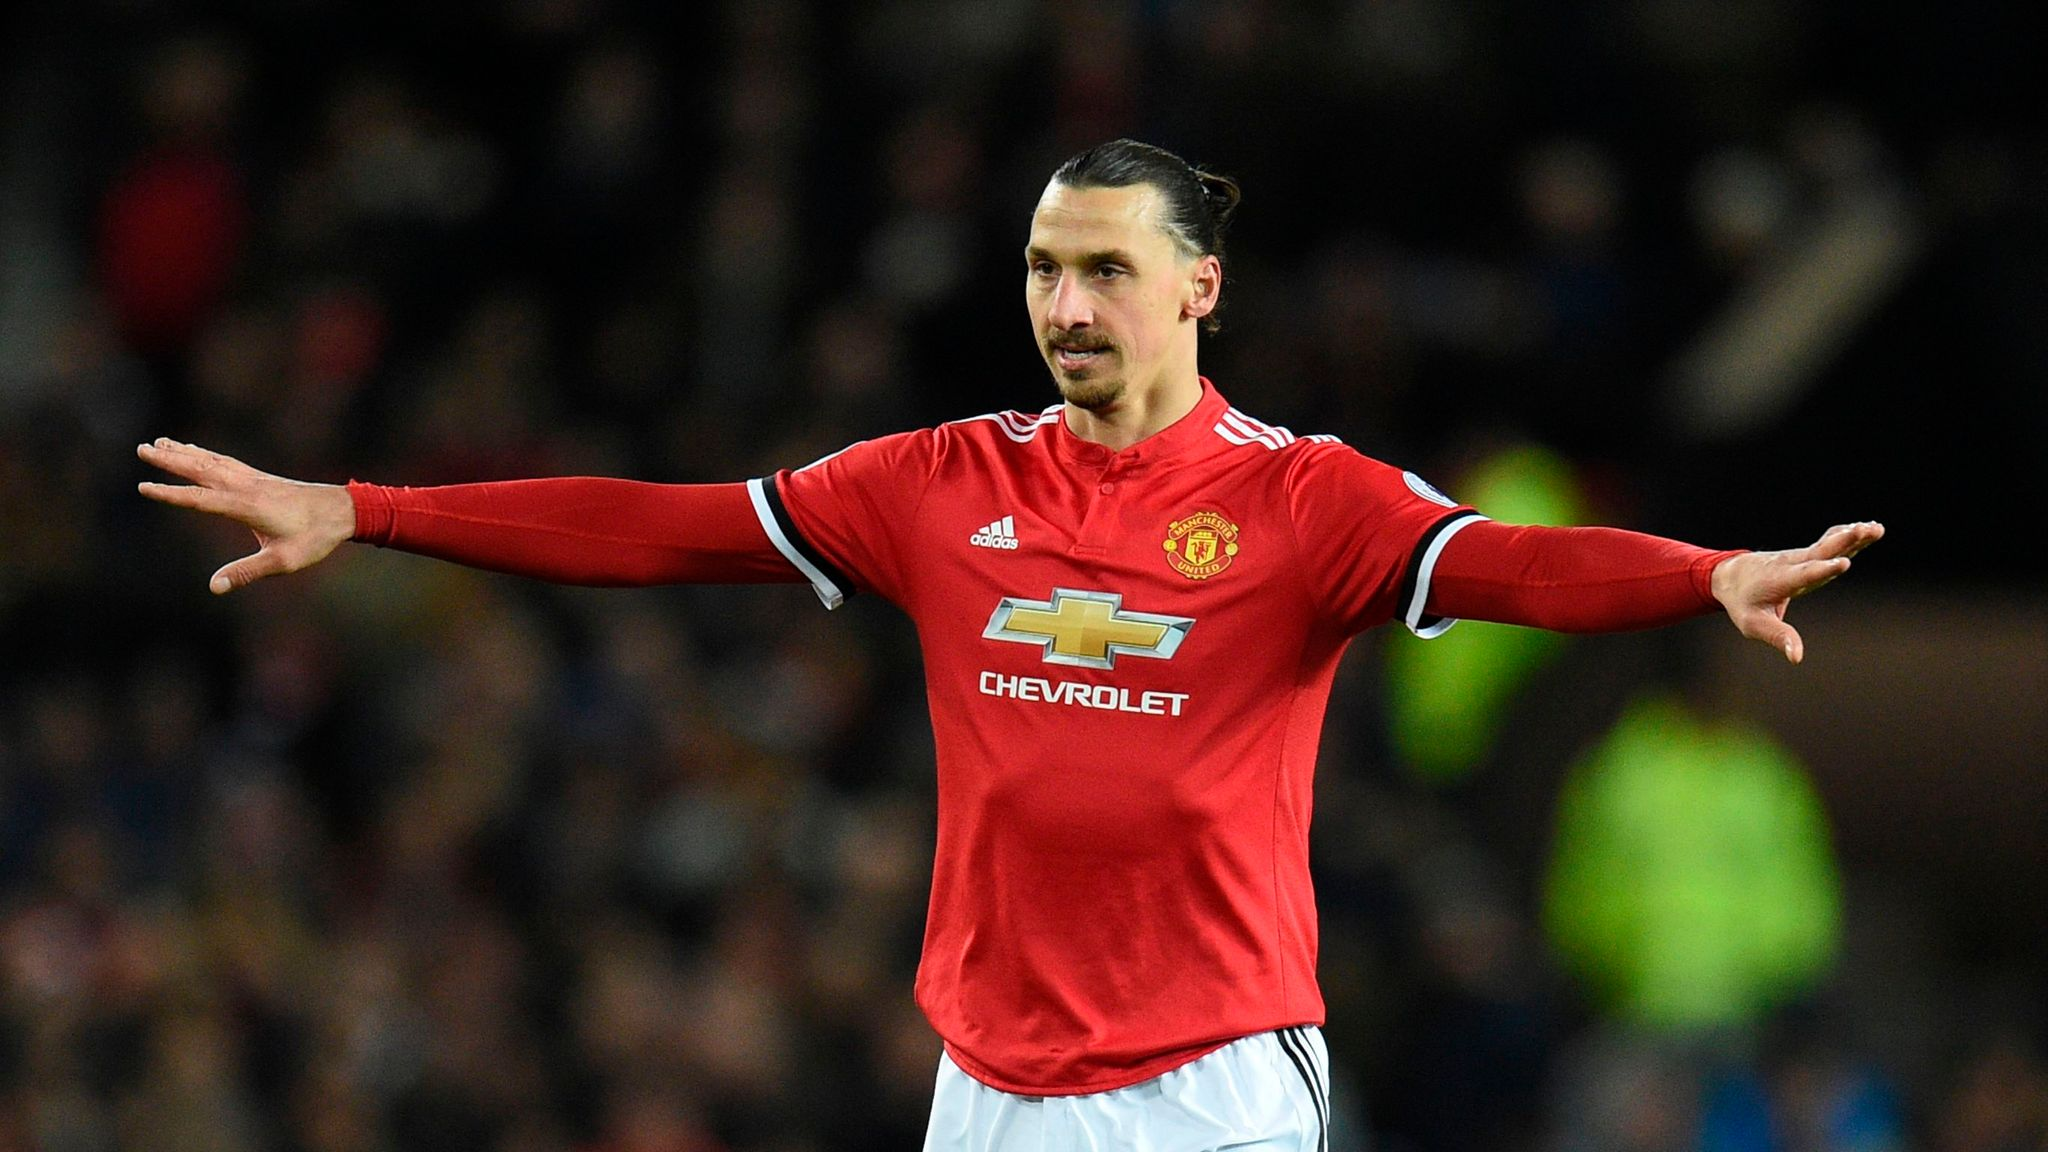 Zlatan Ibrahimovic S Best Manchester United Quotes As He Leaves The Club Football News Sky Sports